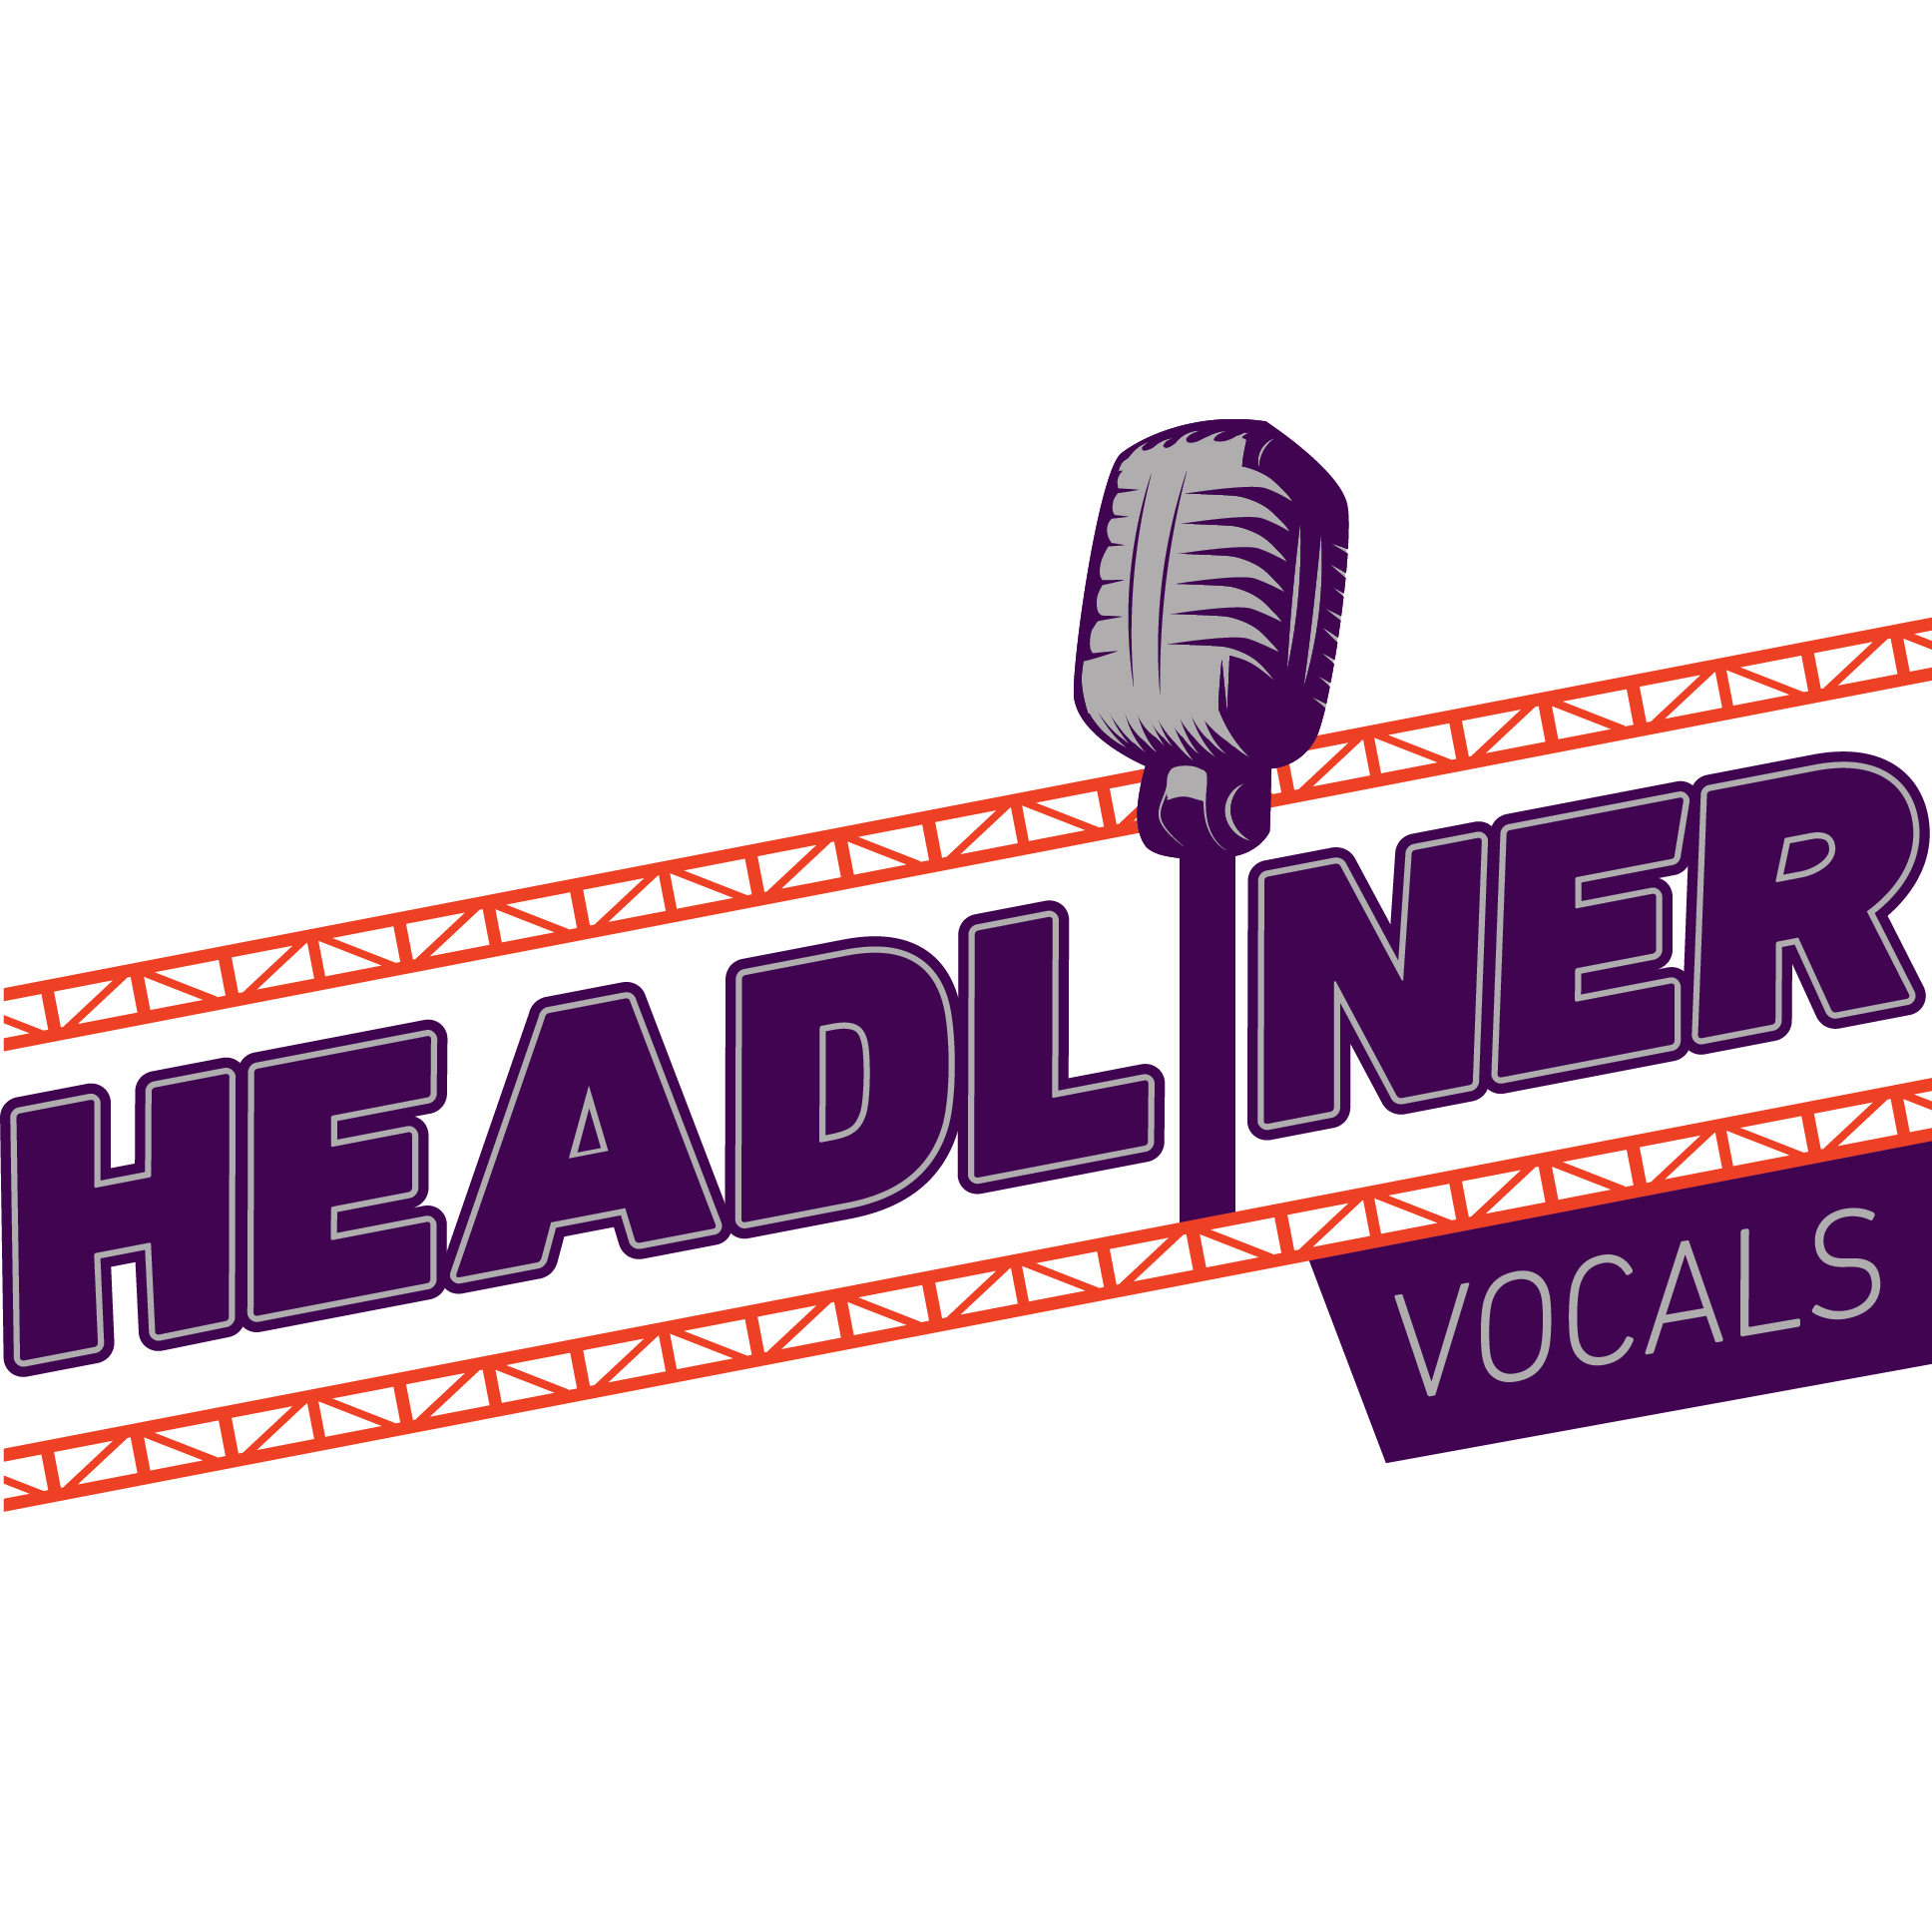 Headliner Vocals